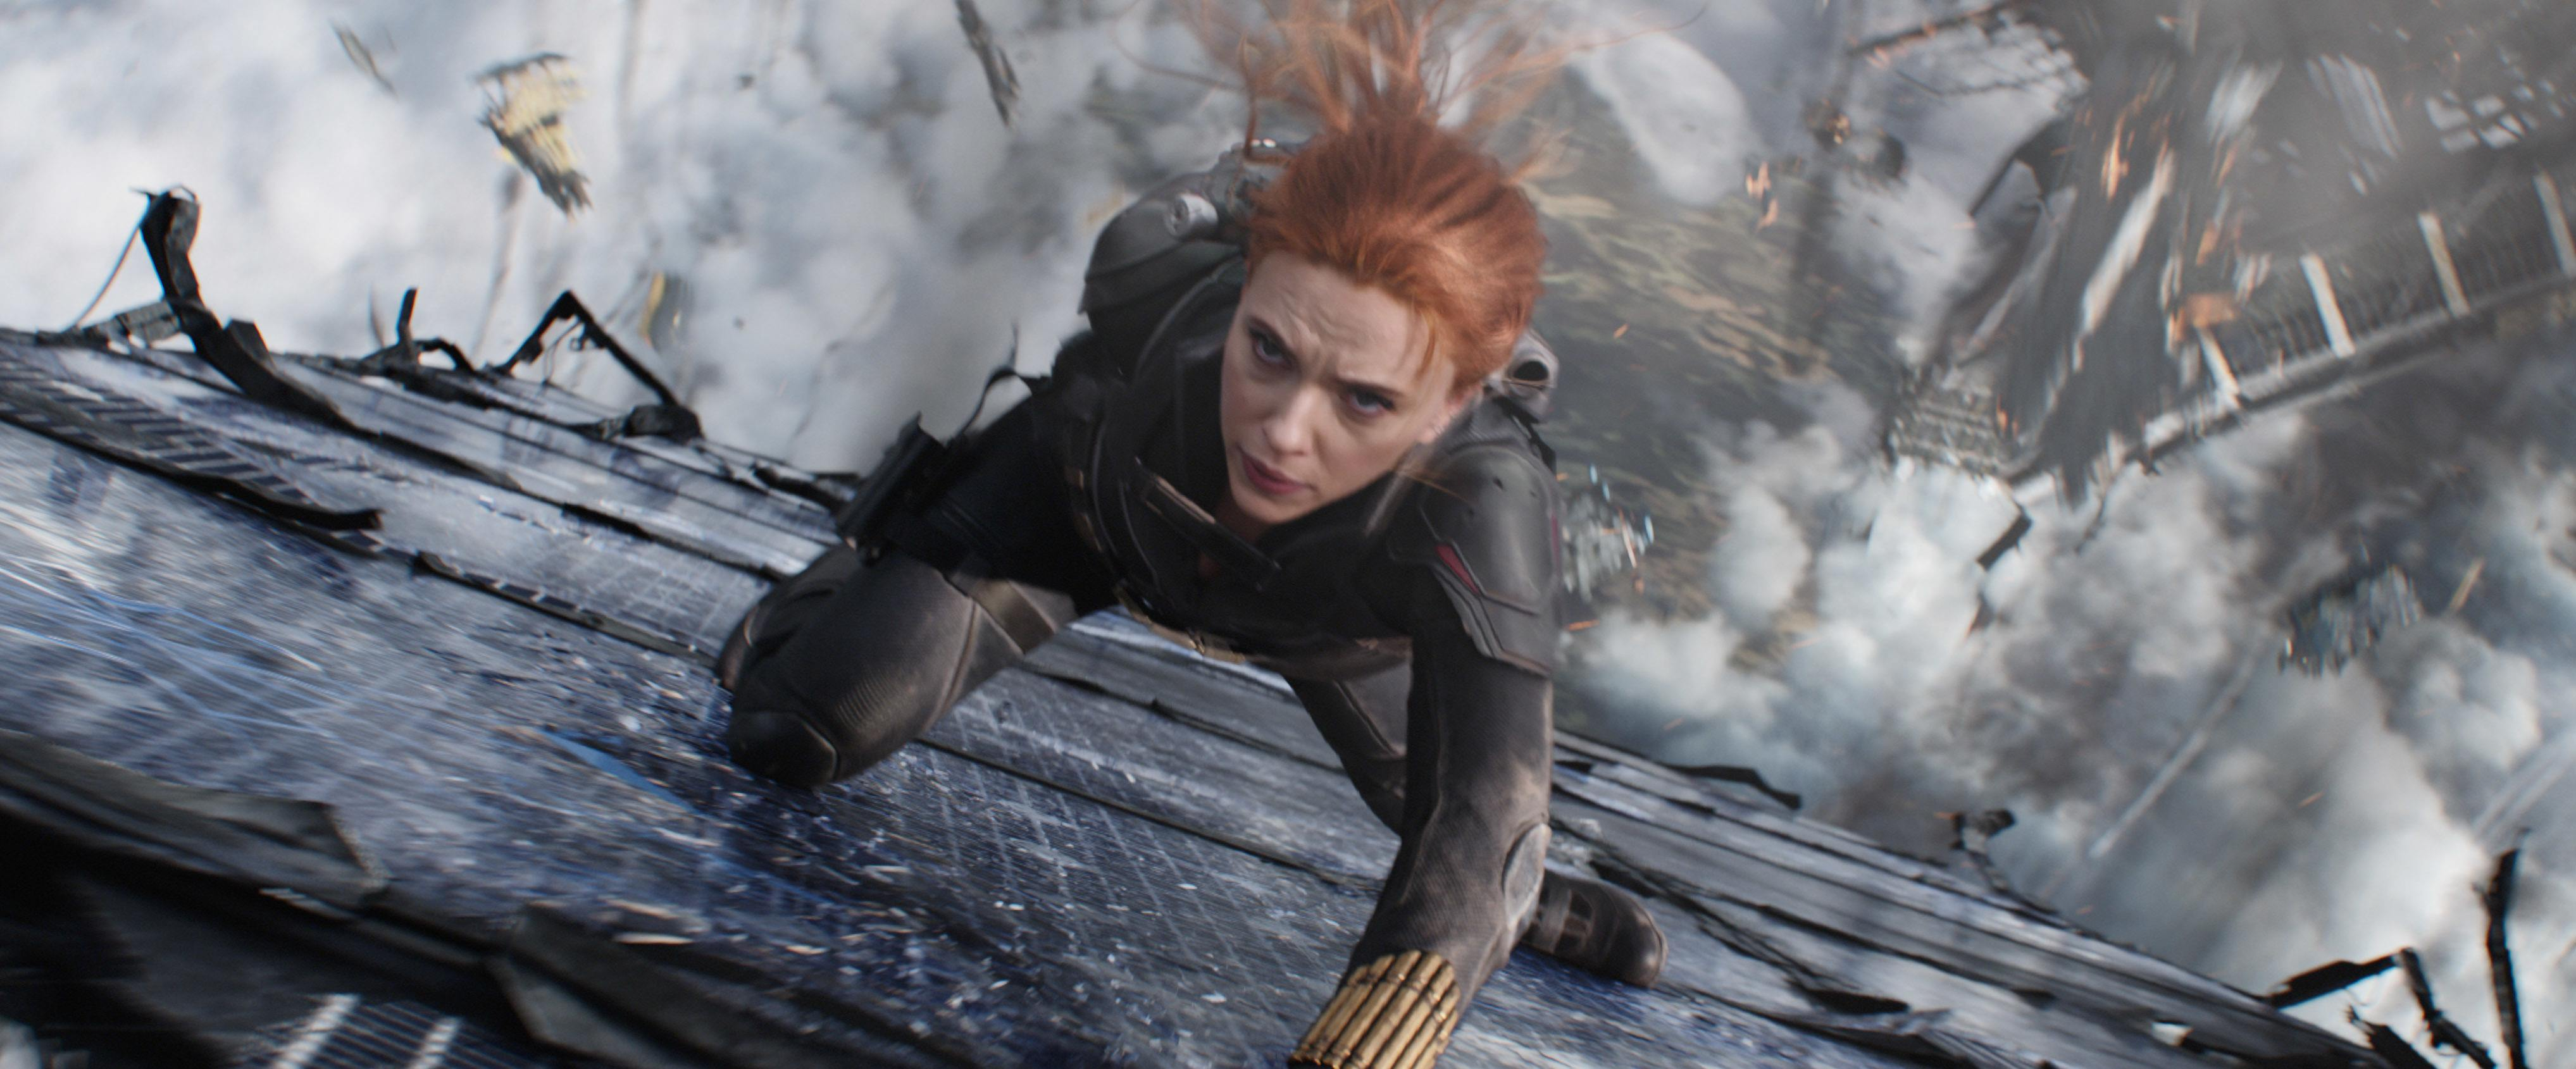 A still image from the movie Black Widow